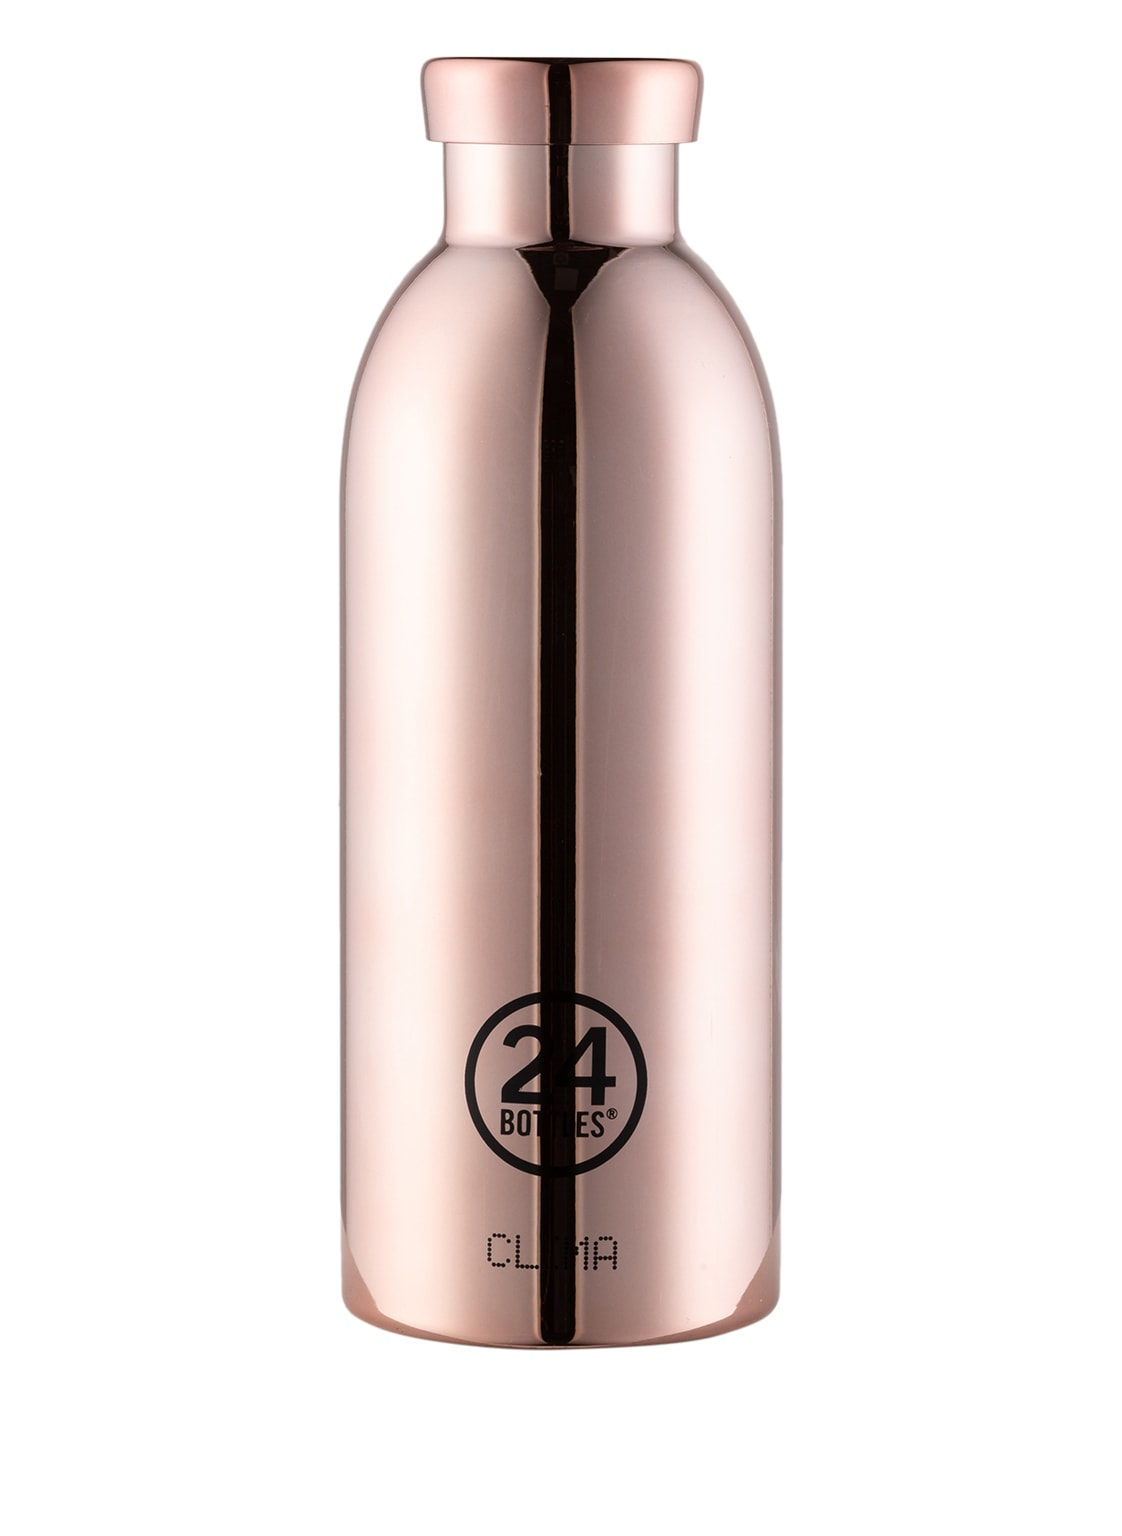 Image of 24bottles Isolierflasche Clima rosegold